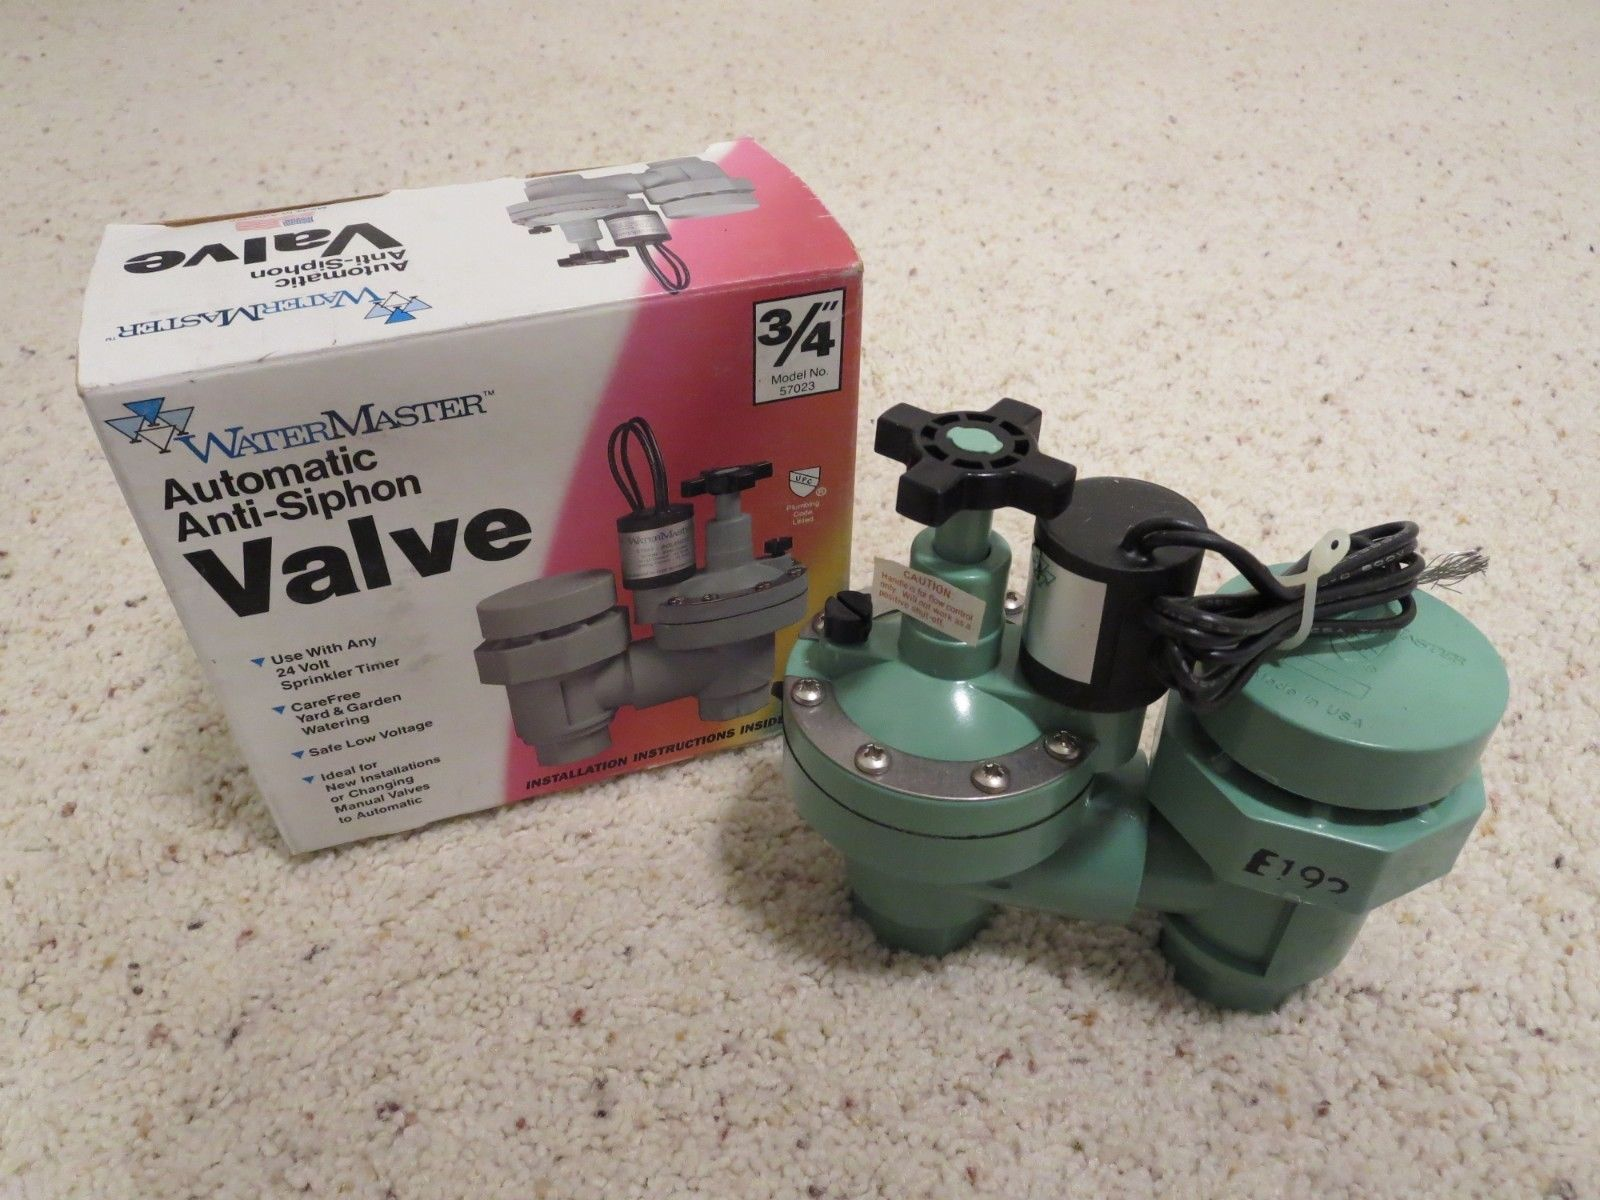 Valves 75673 Watermaster Automatic Anti Siphon Valve 3 4 Model No 57023 Buy It Now Only 29 99 On Ebay Valves Watermaster Automat Valve Siphon Ebay